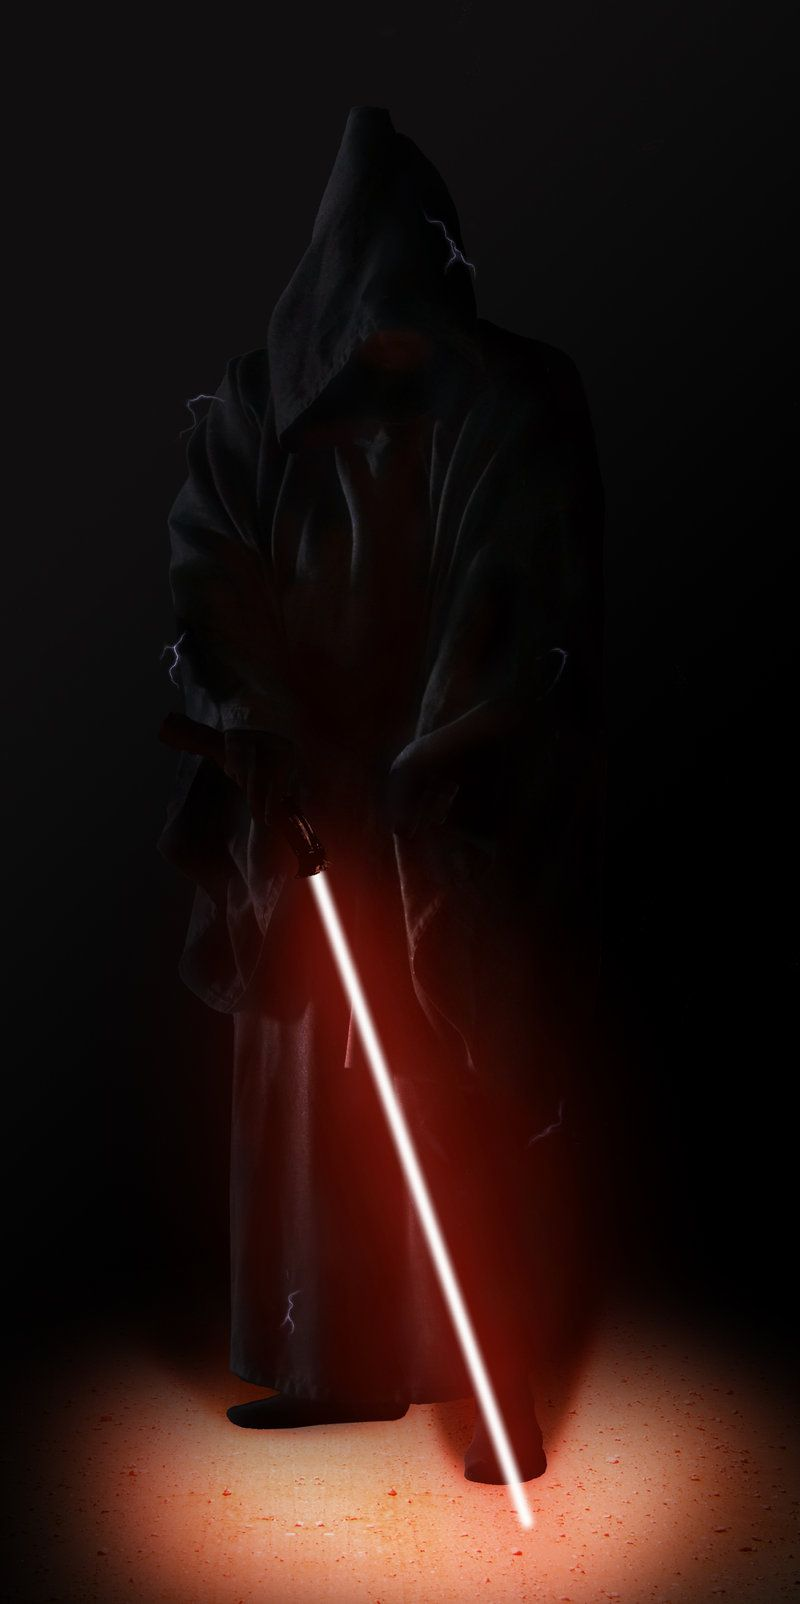 Dark Lord Of The Sith By Mtdewer On Deviantart Dark Lord Of The Sith Sith Lord Dark Lord